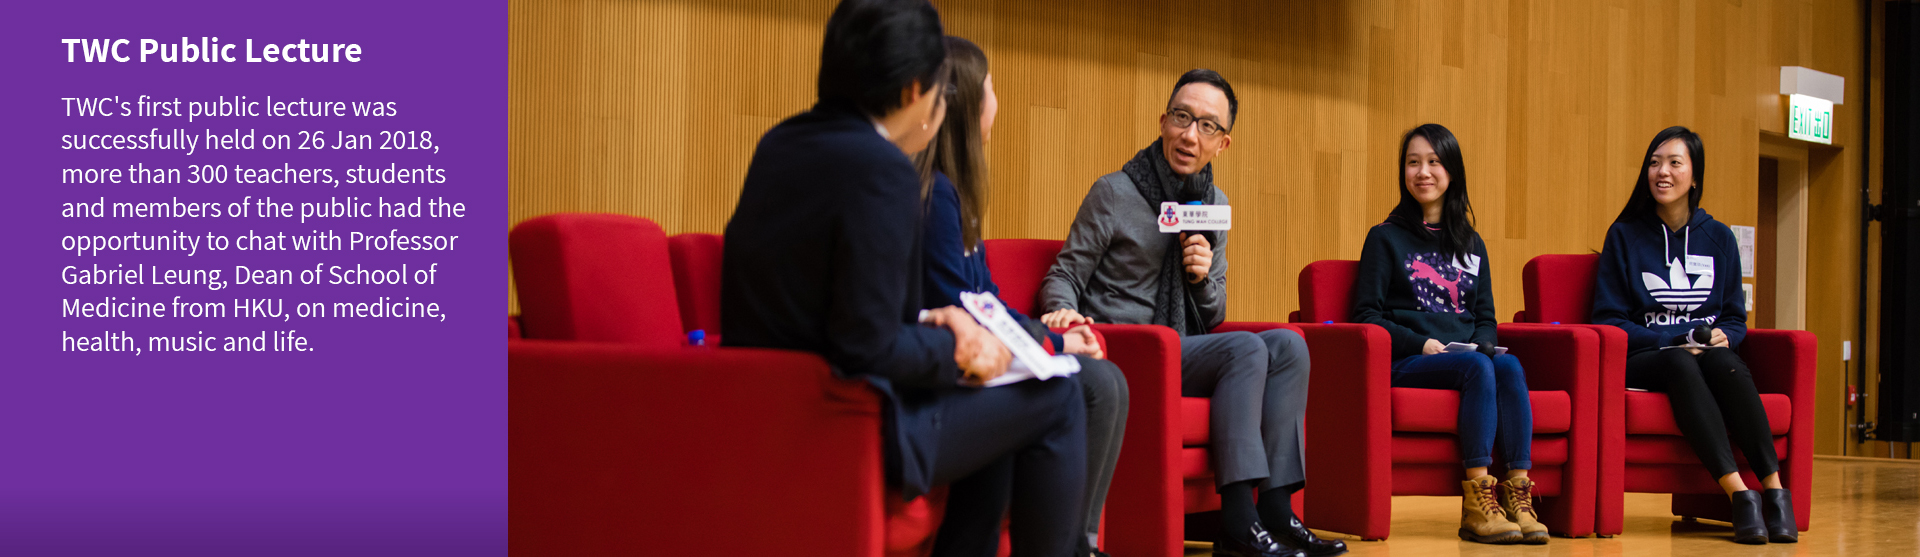 TWC\'s first public lecture was successfully held on 26 Jan 2018, more than 300 teachers, students and members of the public had the opportunity to chat with Professor Gabriel Leung, Dean of School of Medicine from HKU, on medicine, health, music and life